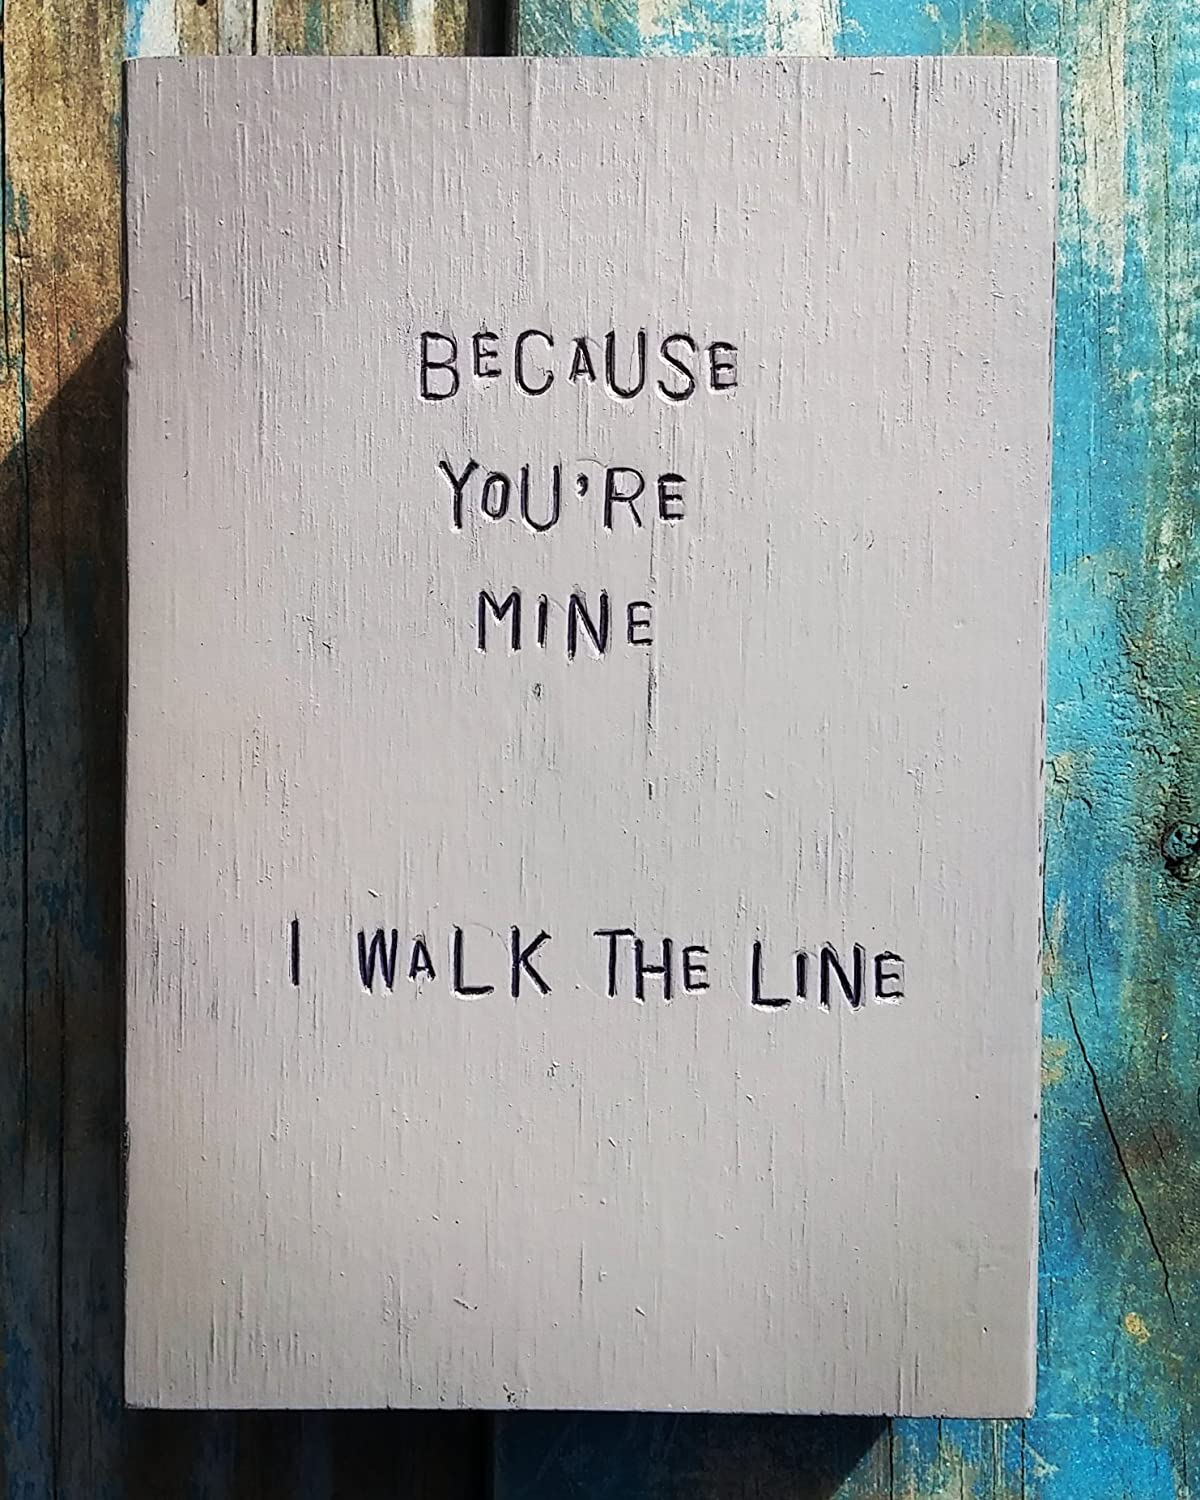 WiLDWoRDS - beautiful words on wood - BeCaUSe YoU'Re MiNe, I WaLK THe LiNe - Johnny Cash song lyric - distressed art block - gift for wife, husband - for wedding, anniversary, Valentine's Day Valentine' s Day